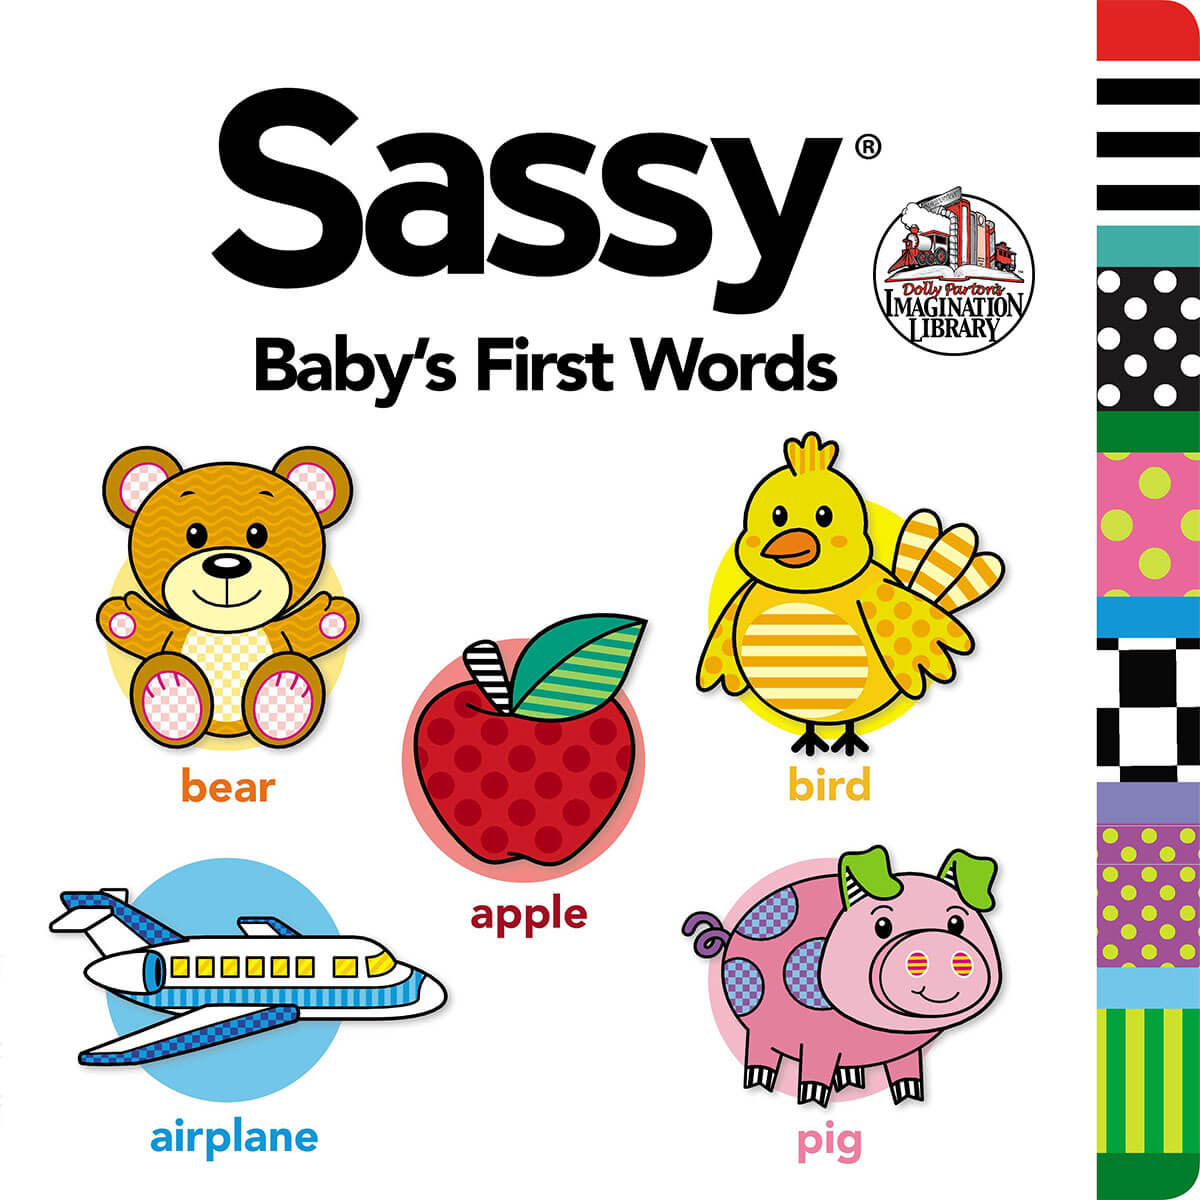 Sassy-Babys-First-Words_Instagram.jpg